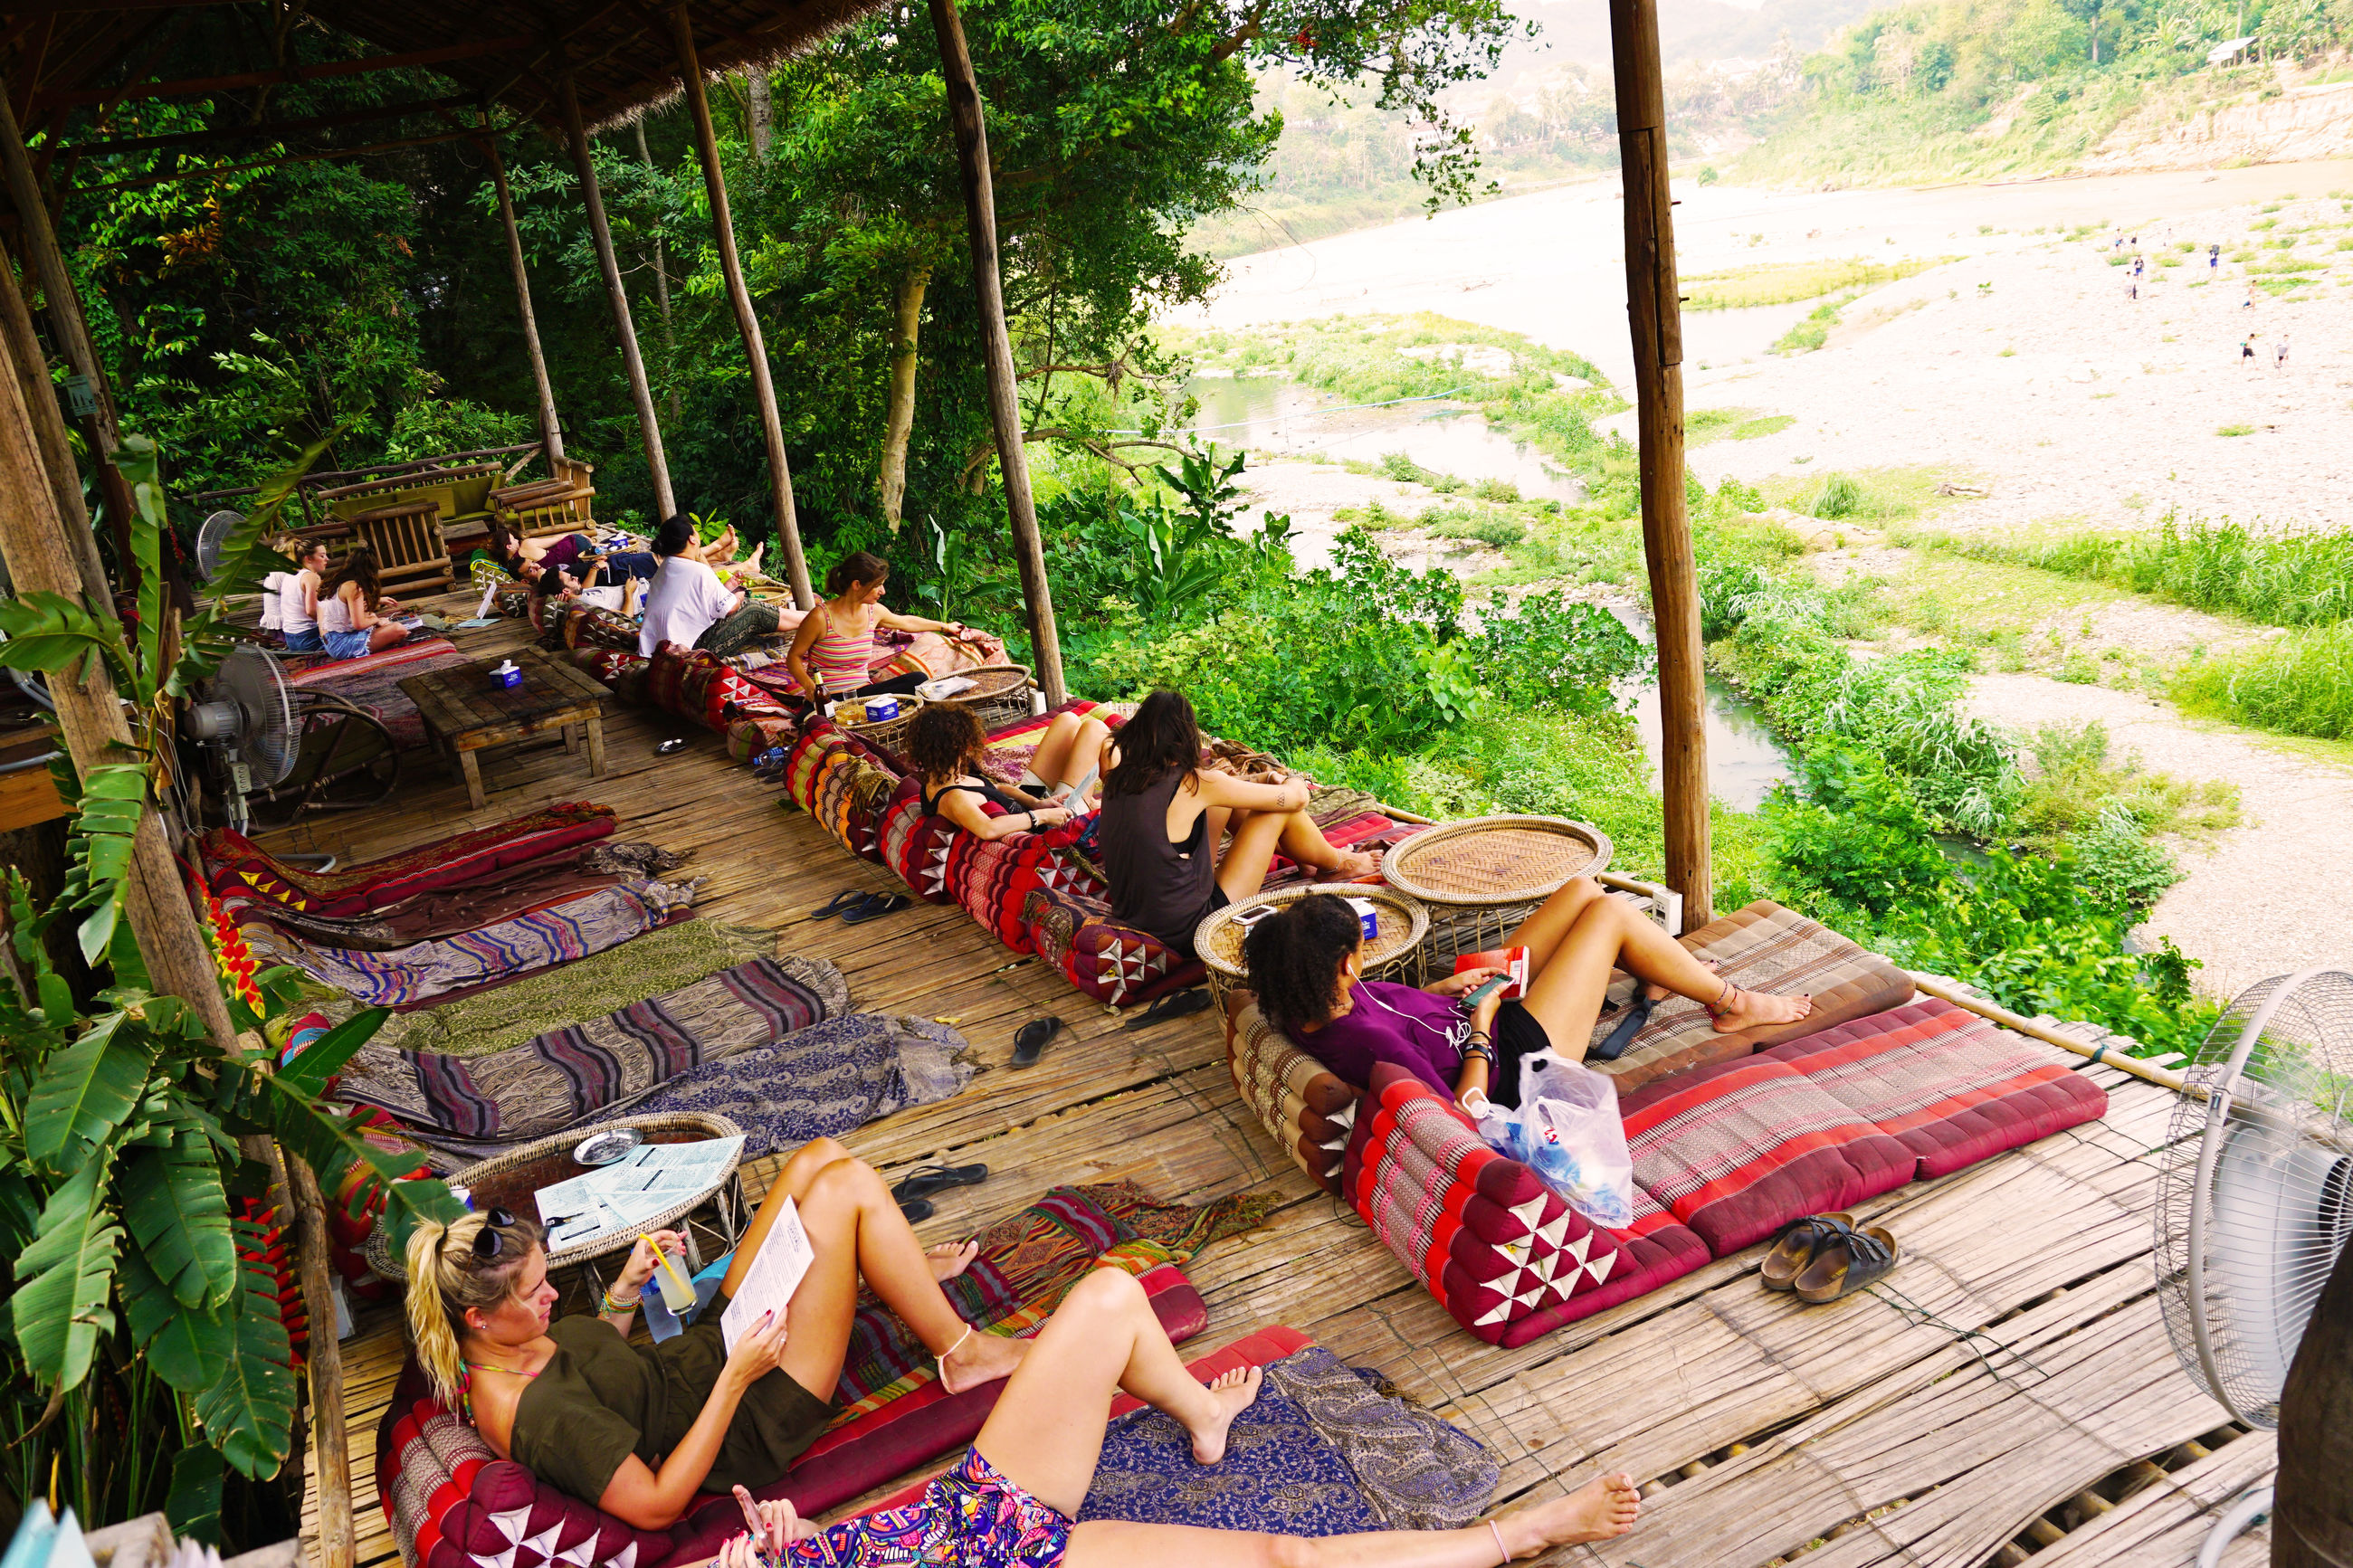 high angle view, sitting, real people, day, leisure activity, togetherness, large group of people, lying down, friendship, outdoors, weekend activities, full length, enjoyment, men, tree, vacations, lifestyles, nature, young adult, women, young women, people, adult, adults only